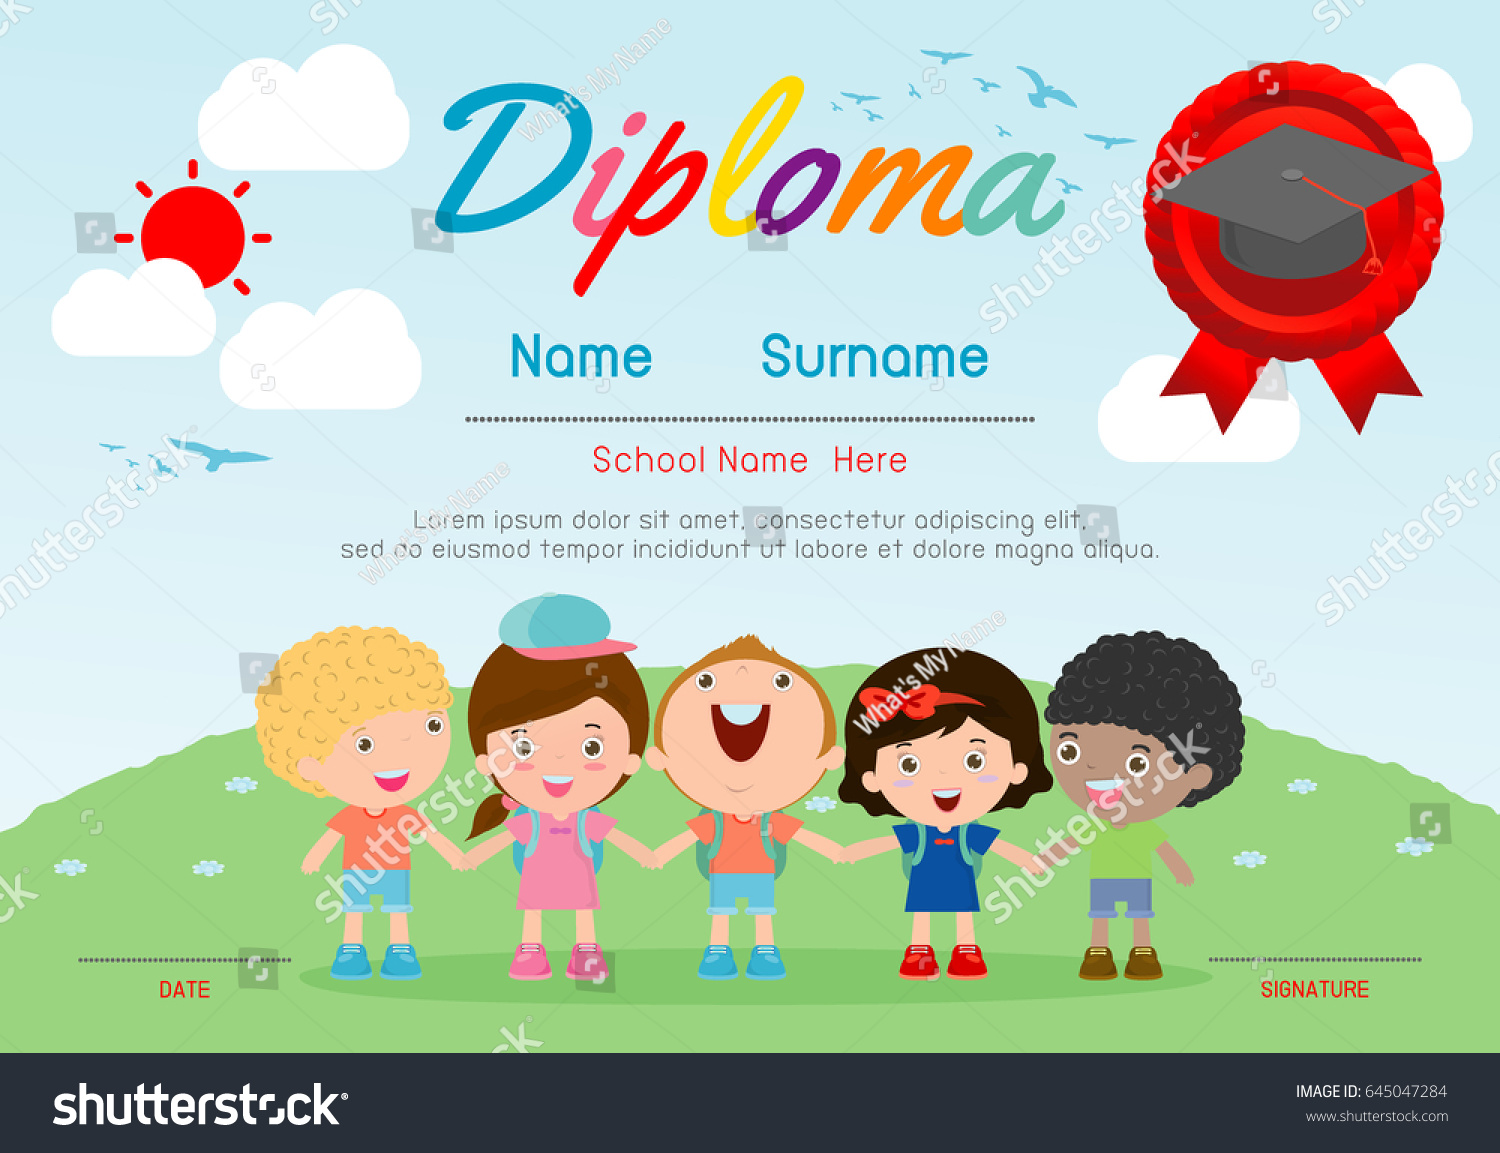 Certificates kindergarten elementary preschool kids diploma stock certificates kindergarten and elementary preschool kids diploma certificate background design template diploma template for yadclub Image collections